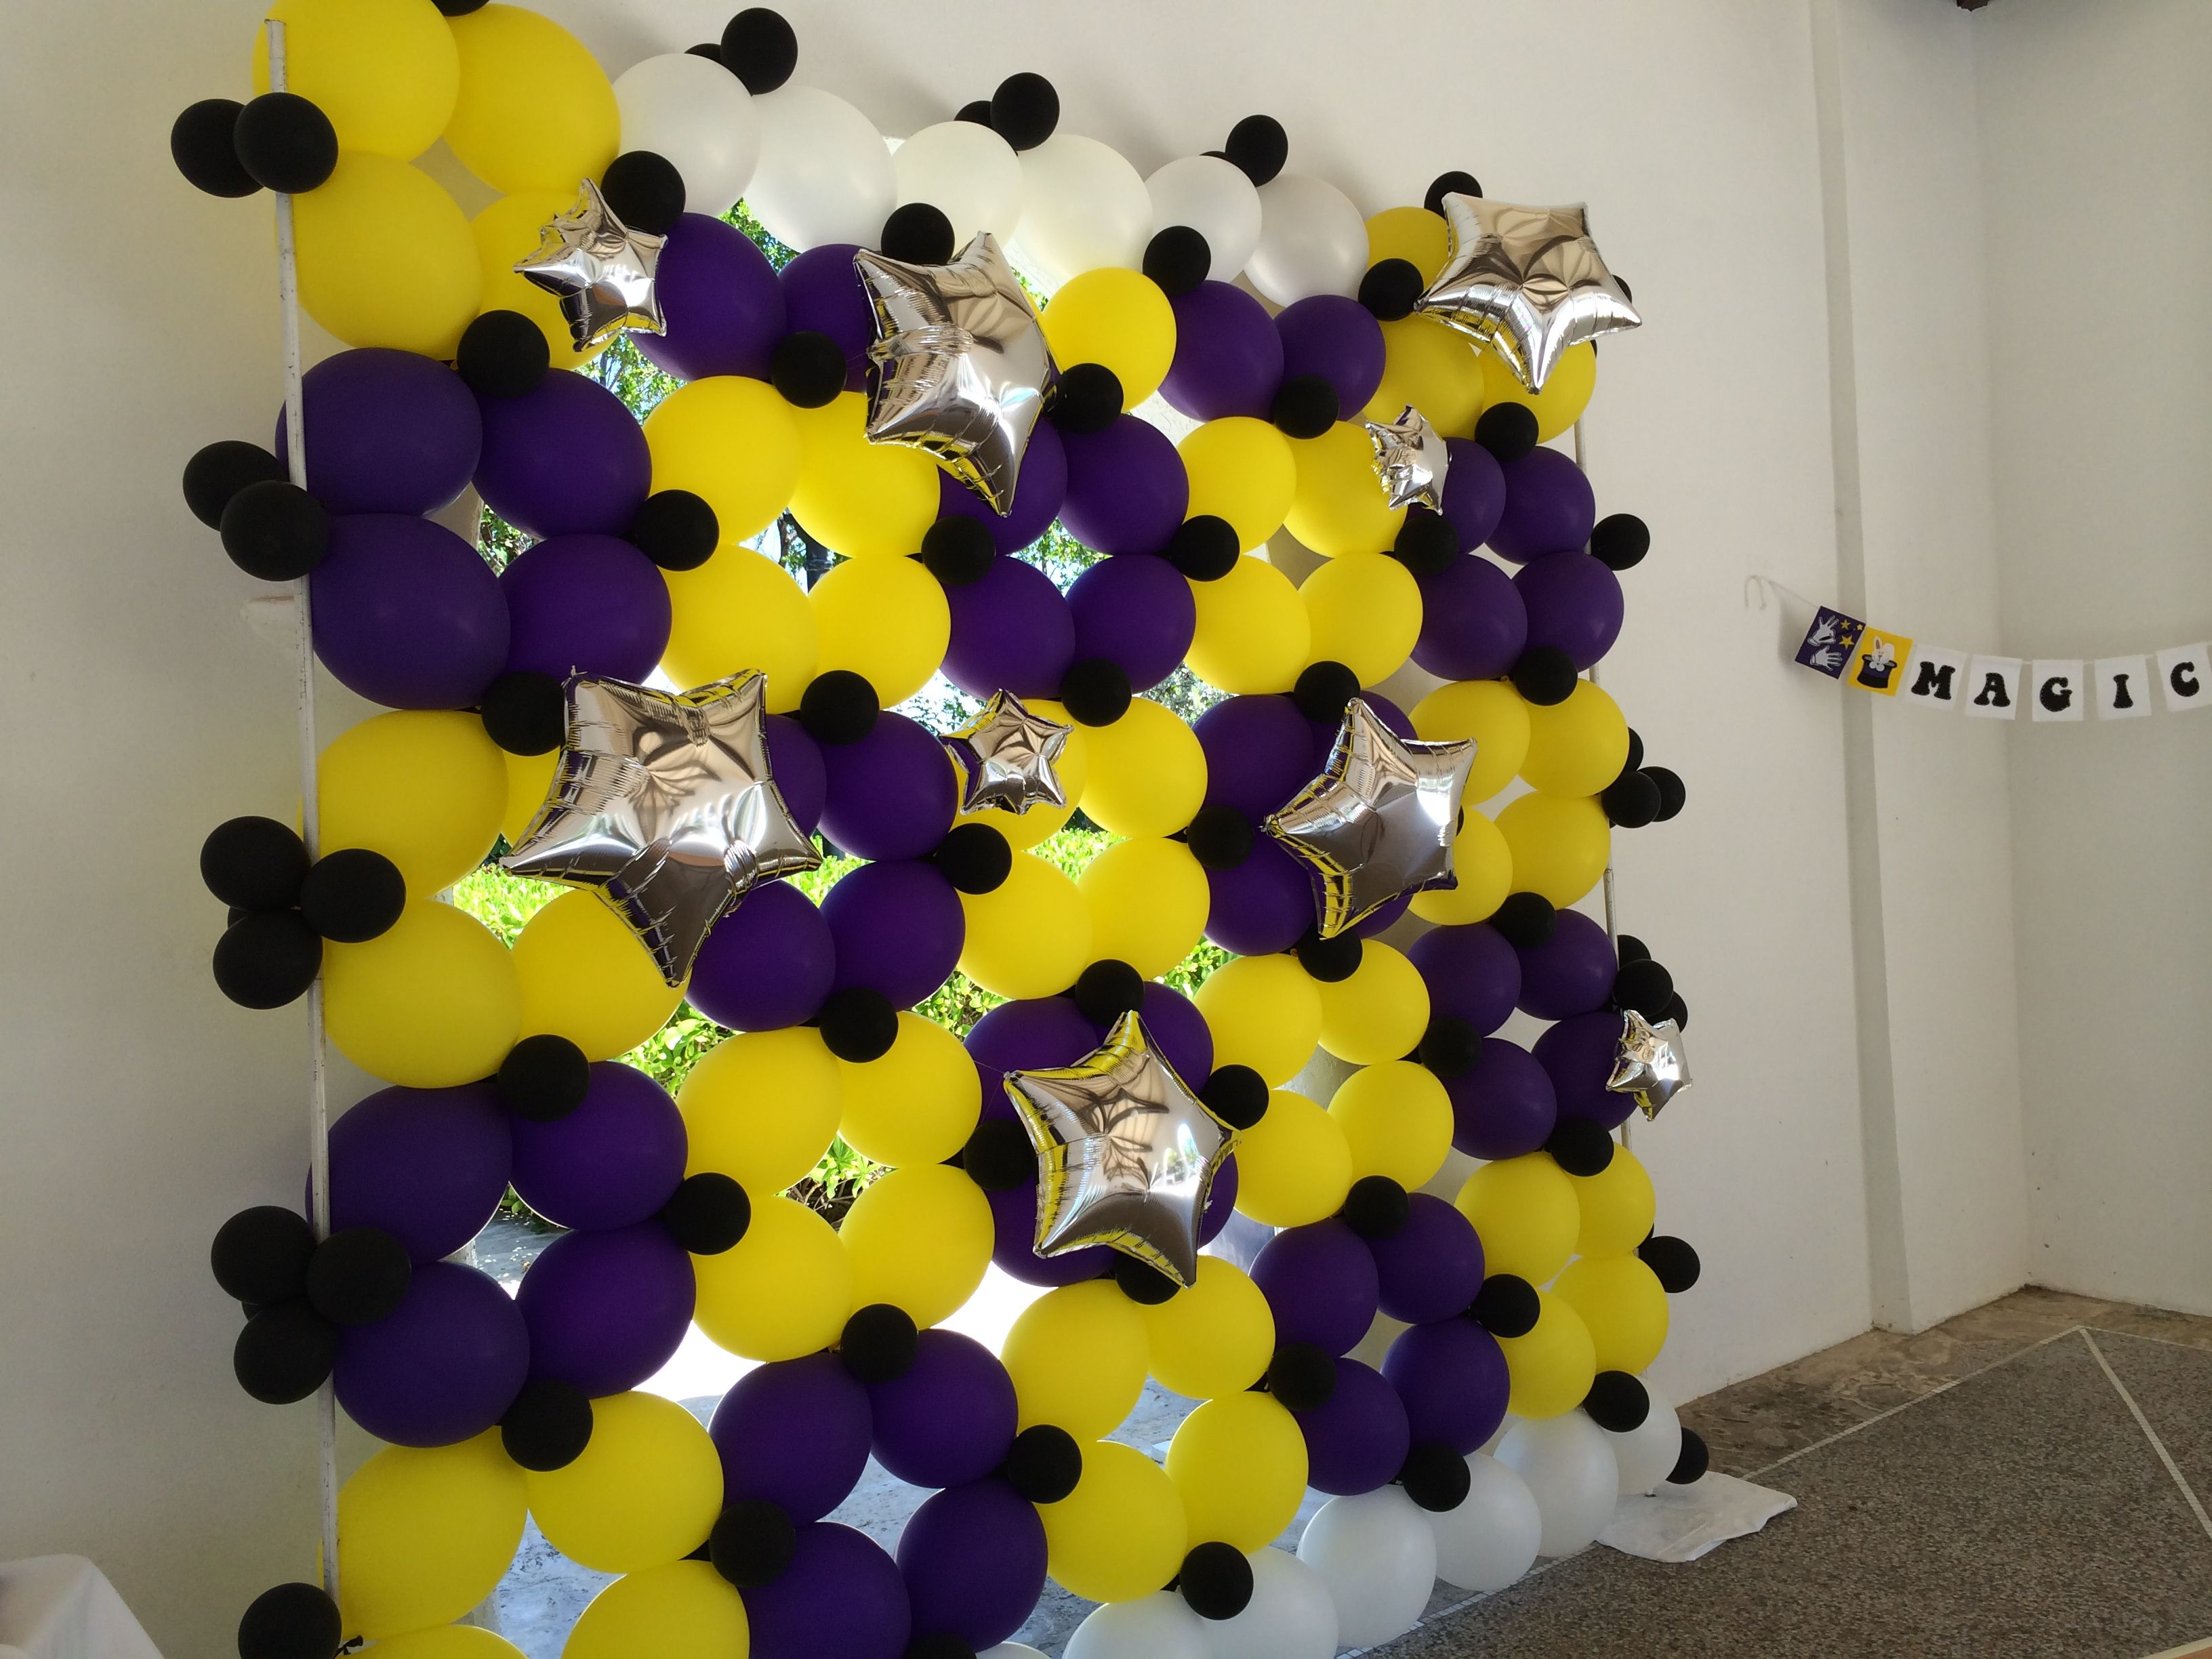 Balloon wall with stars for magic theme kids party www ...